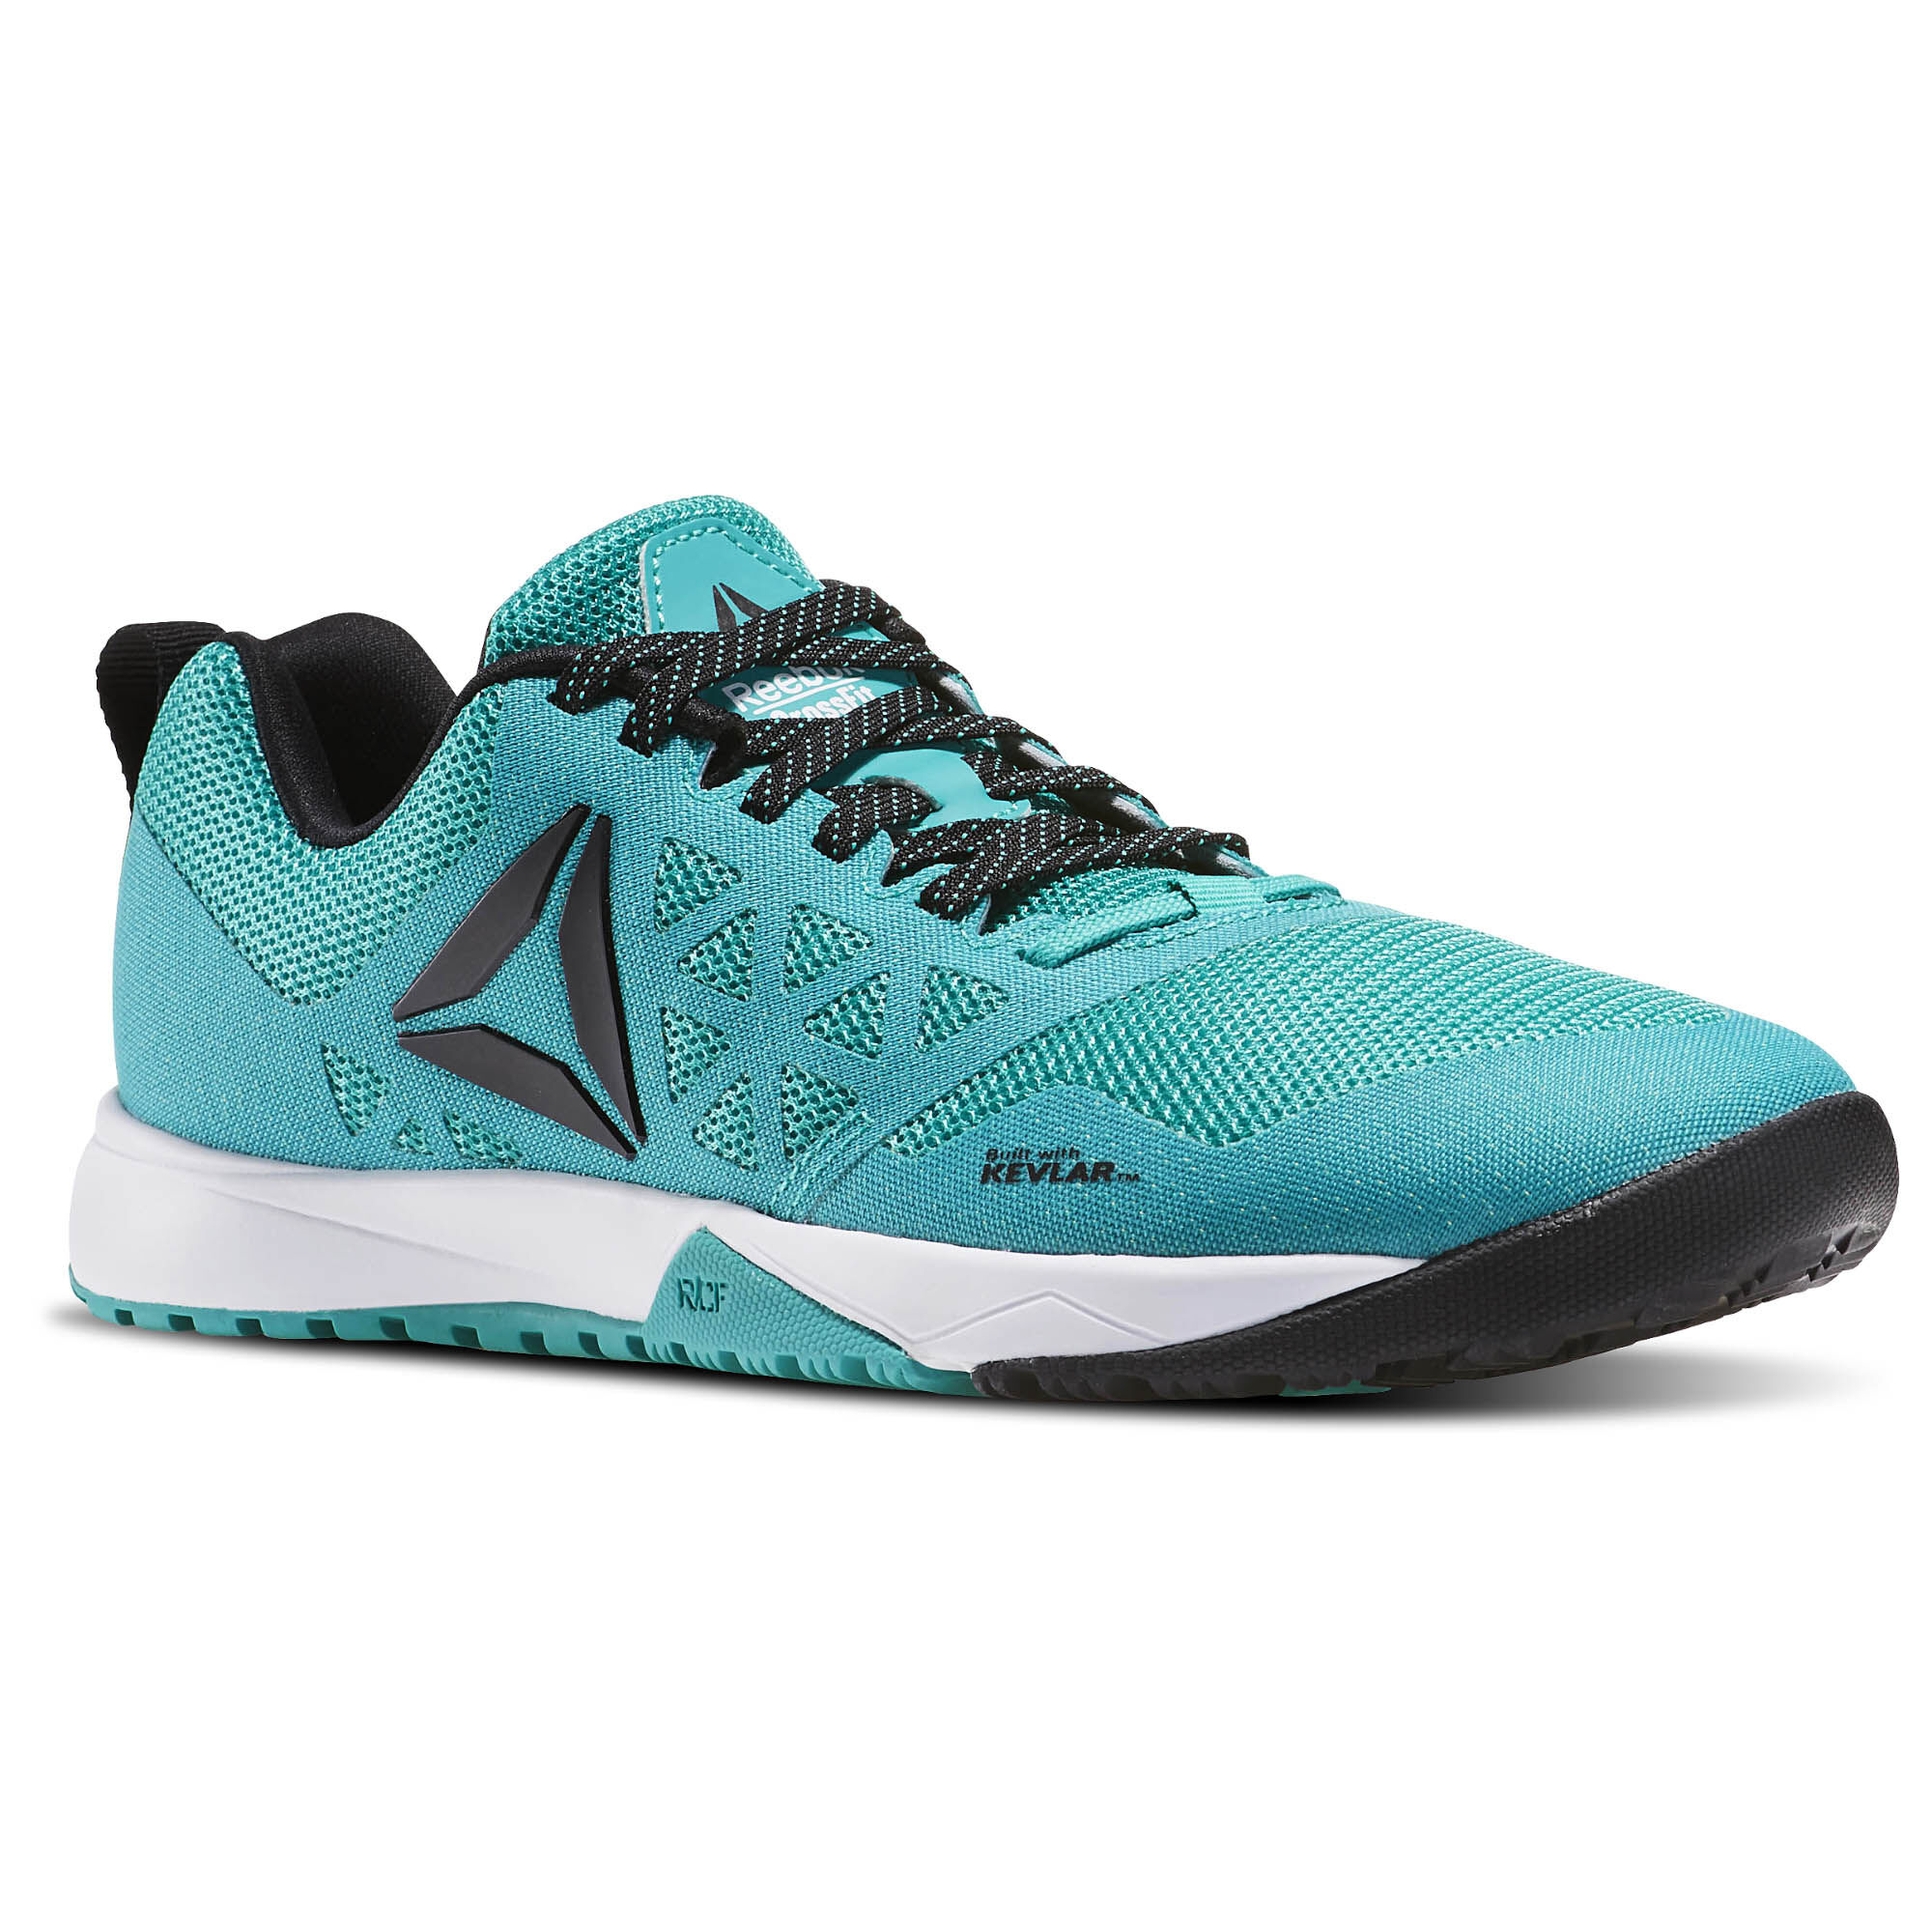 d399b0ddd200af reebok nano 6 mens for sale cheap   OFF60% The Largest Catalog Discounts